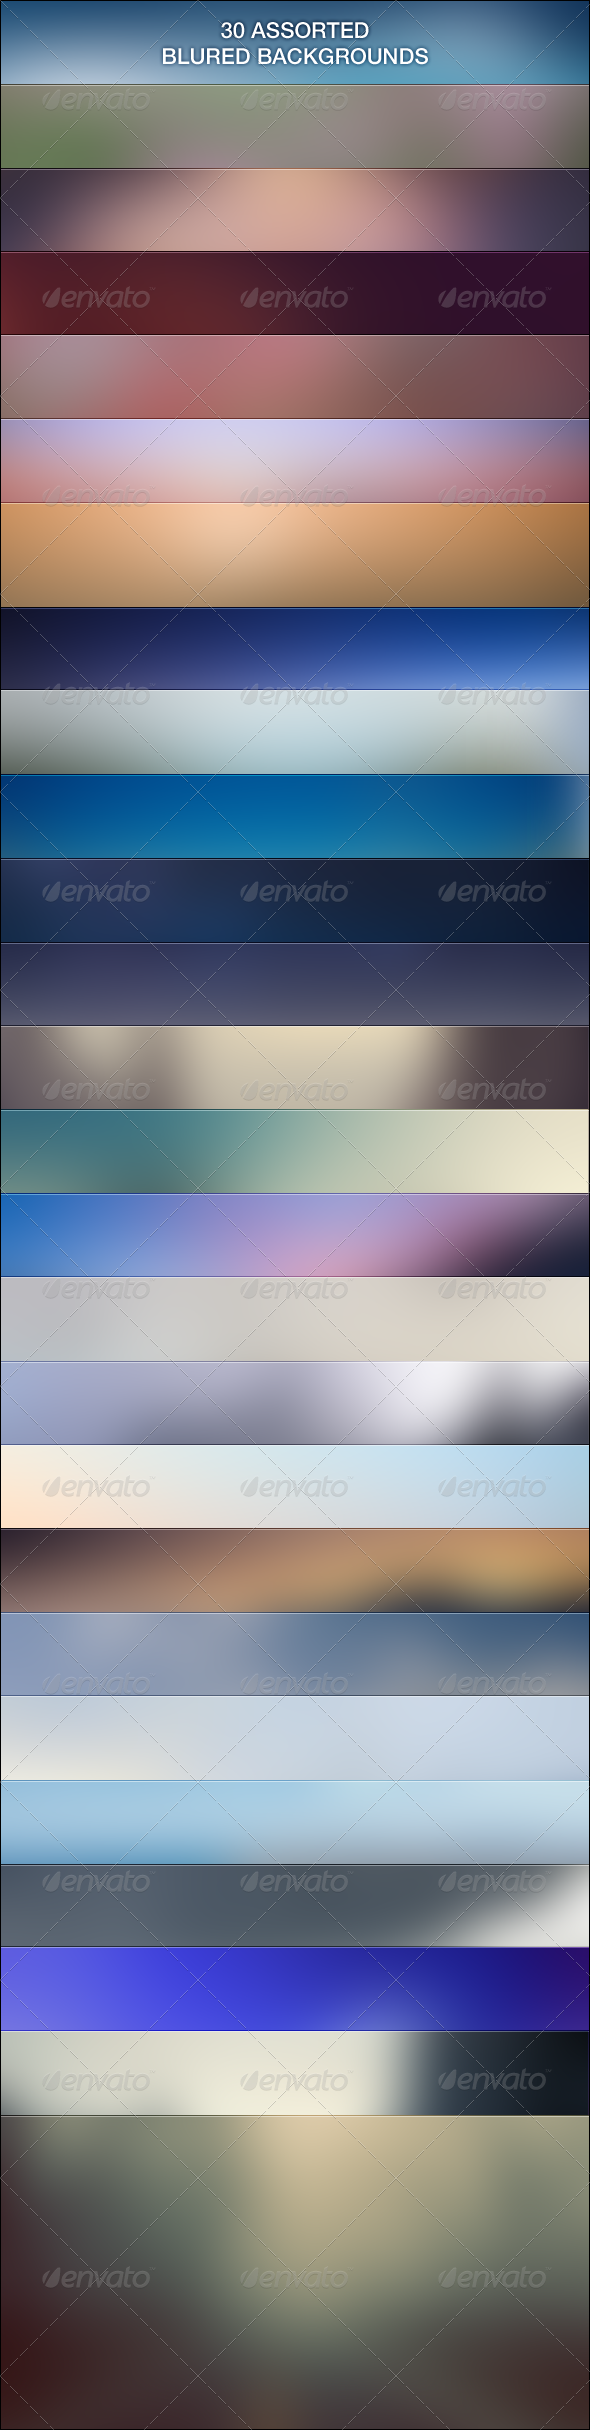 30 Free Assorted Blur Backgrounds